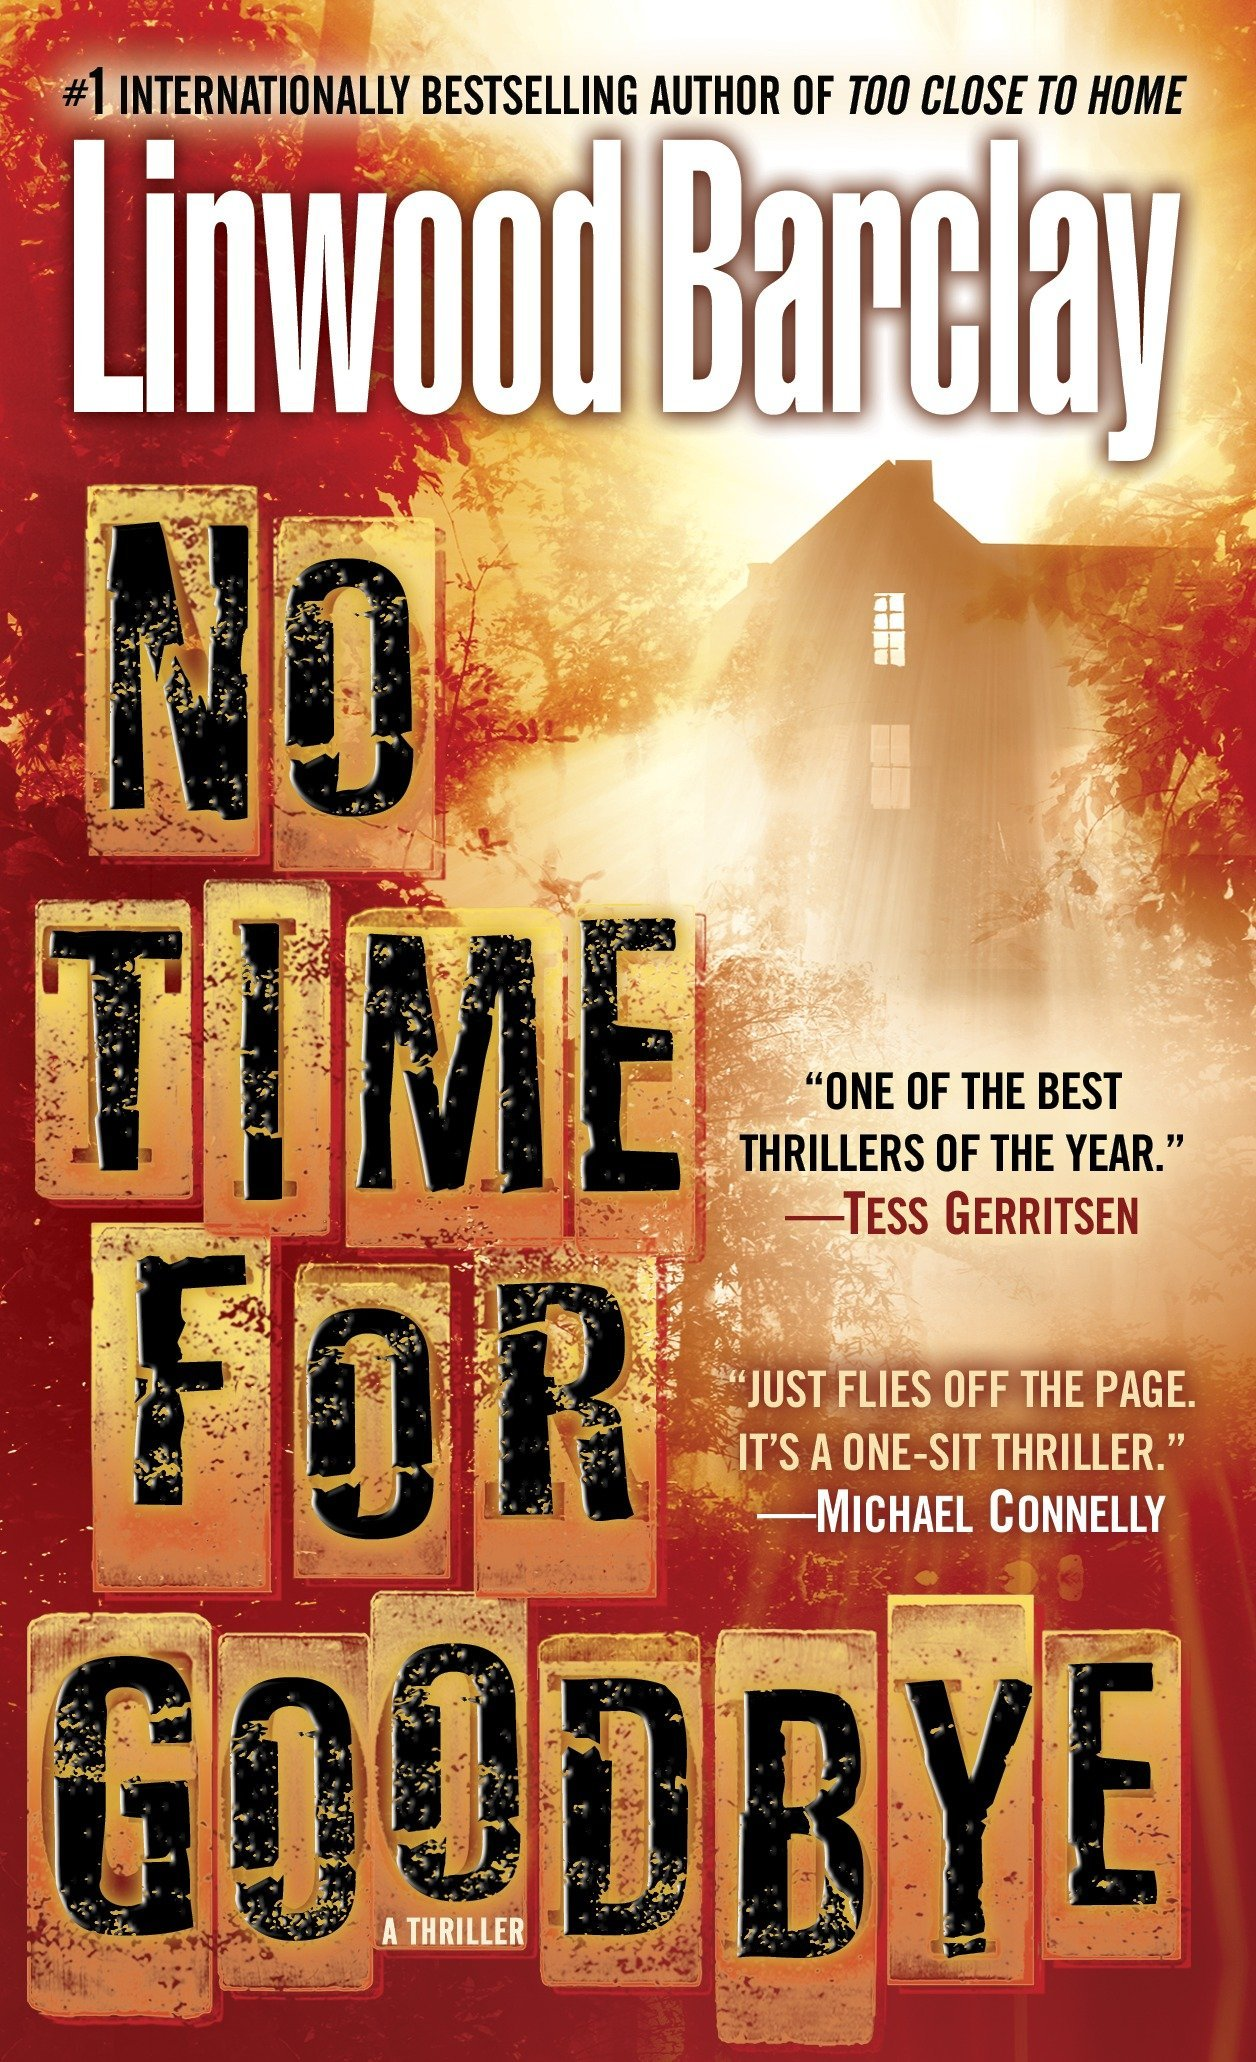 No Time for Goodbye: A Thriller Mass Market Paperback – August 26, 2008 Linwood Barclay Bantam 0553590421 Thrillers - Suspense